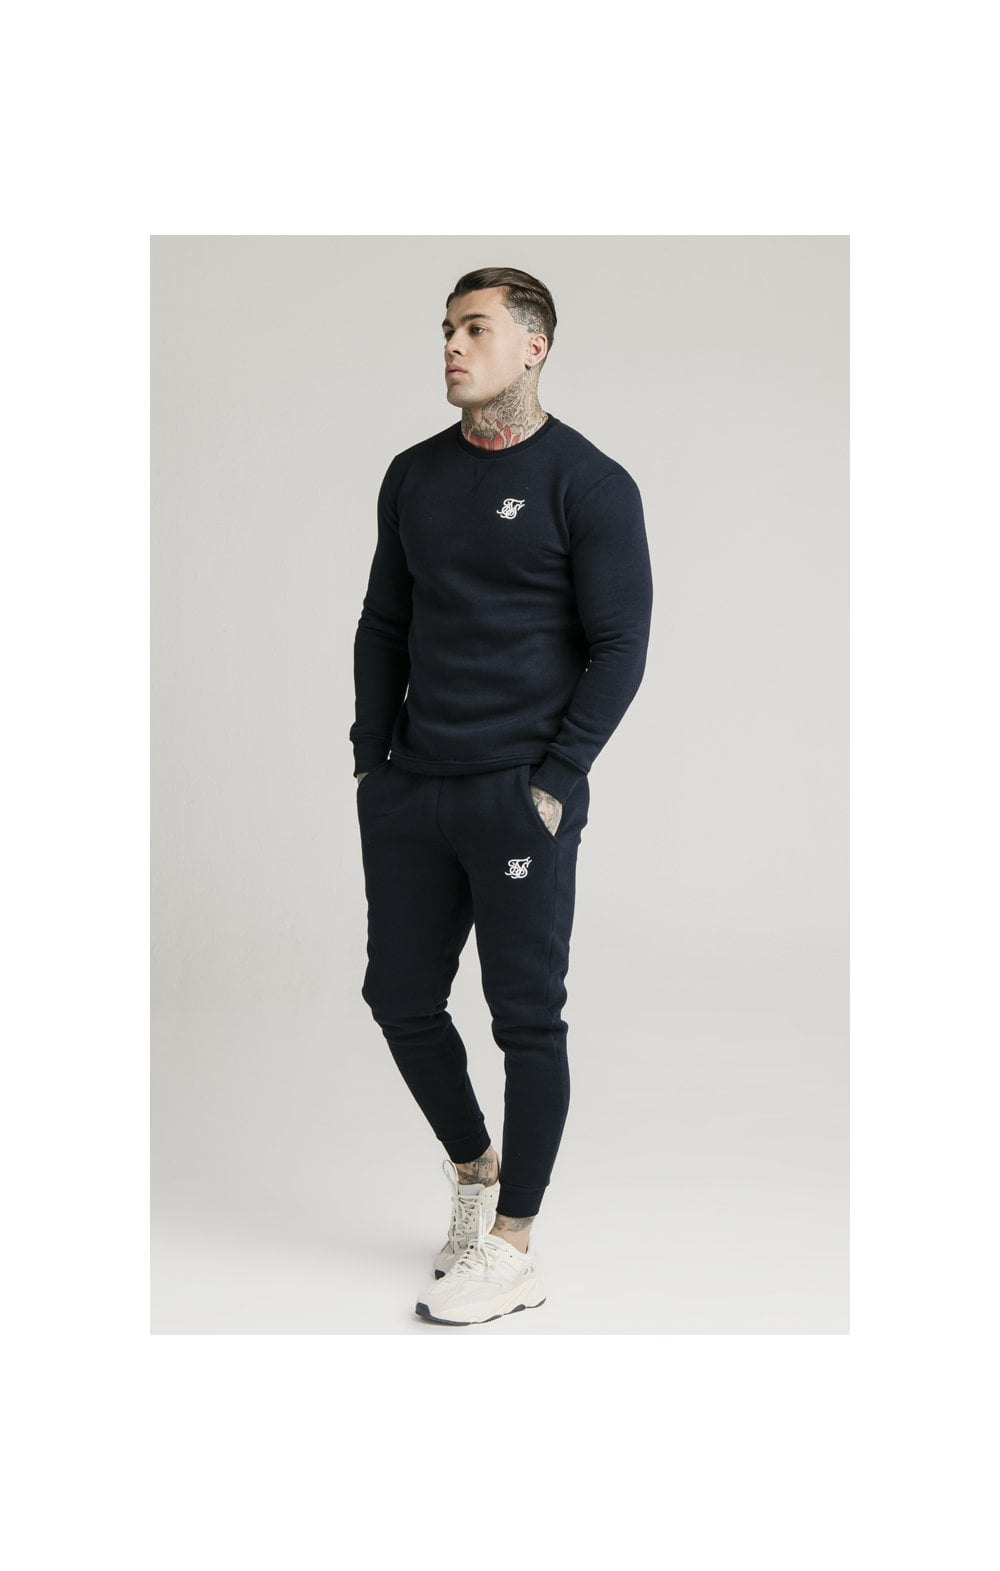 SikSilk Crew Sweat - Navy (3)